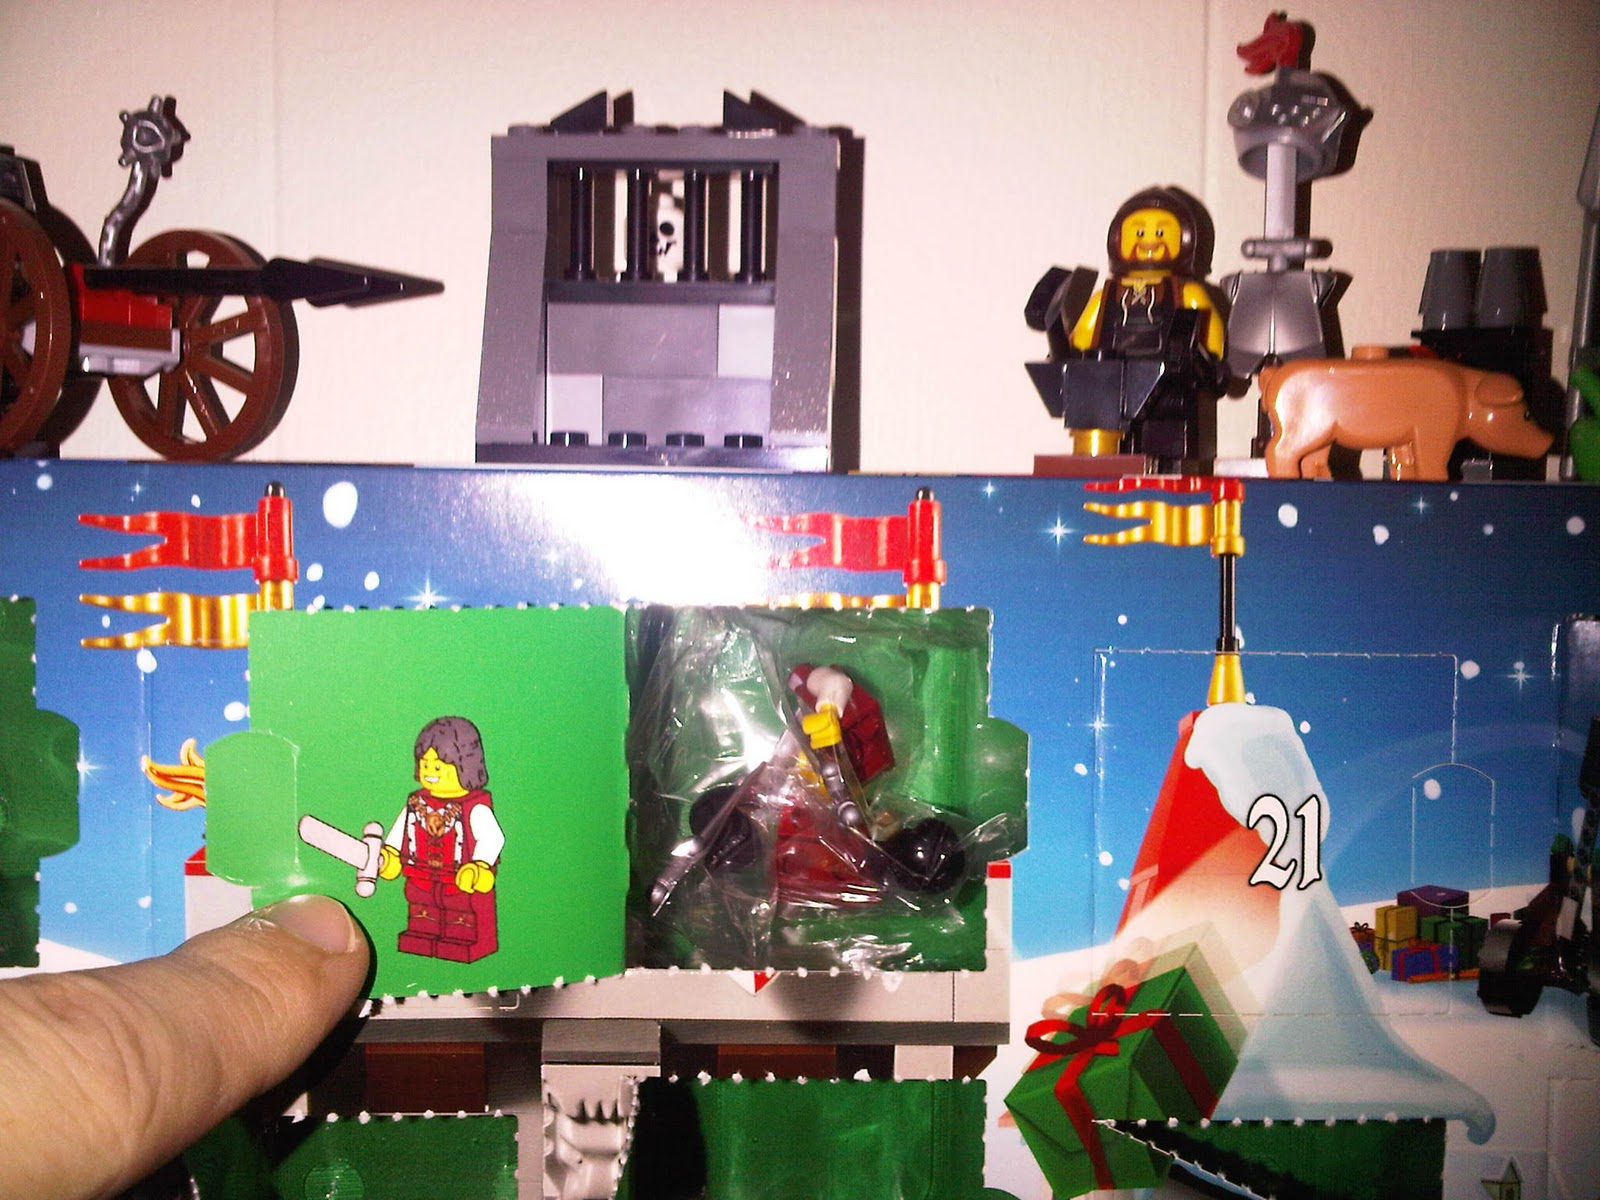 Gramblor 39 s lego advent blog 2010 kingdoms day 13 oh holy knight - Knights of the round table lego ...